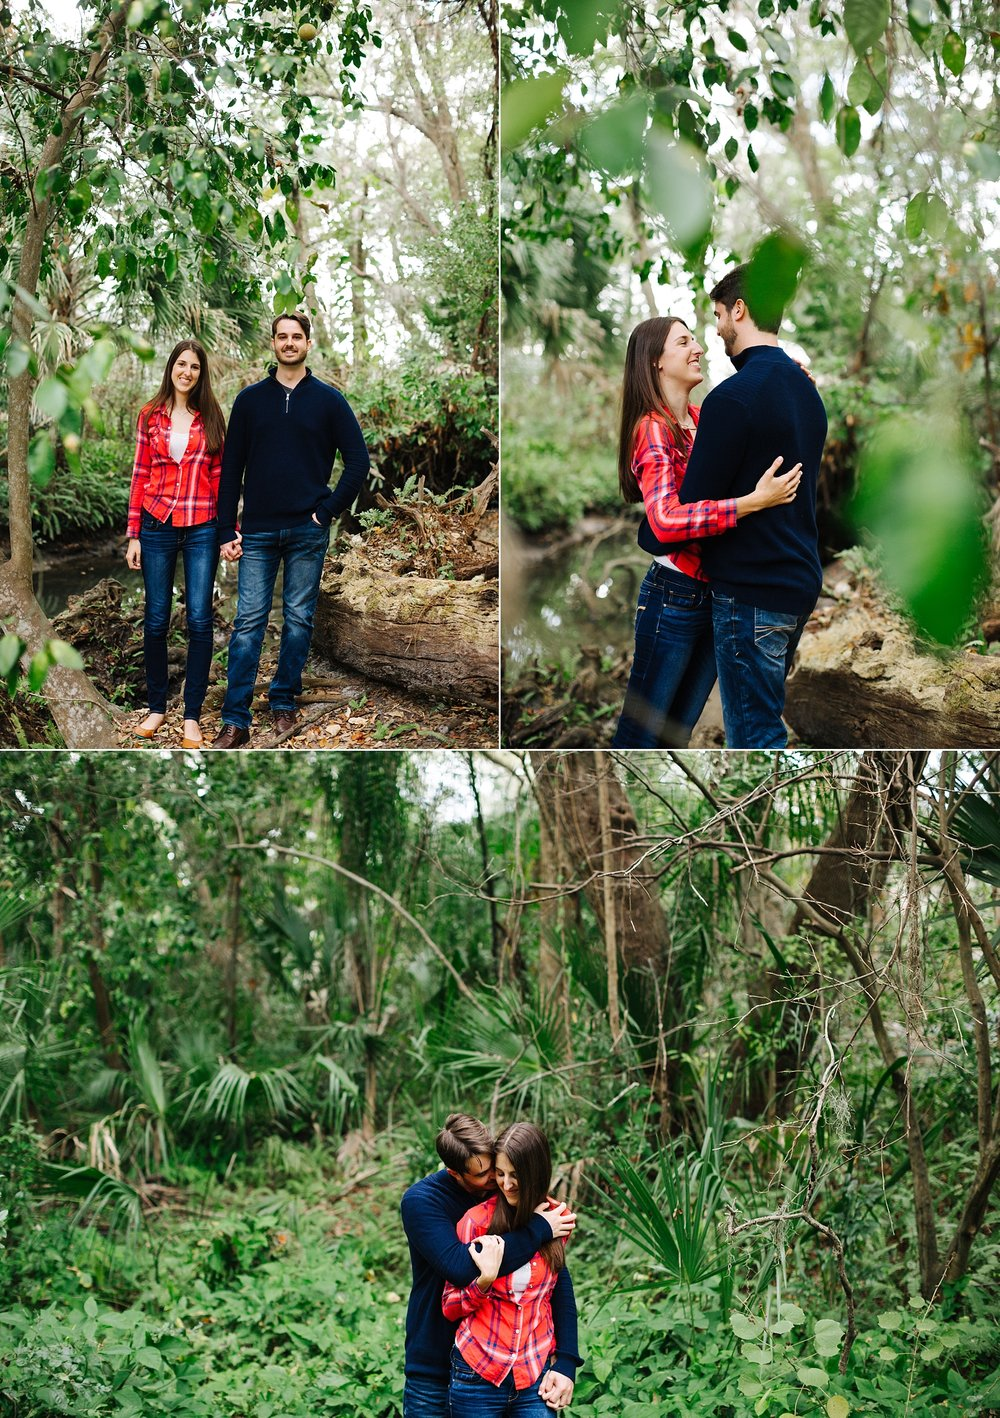 Jake & Katie Photography Seminole Heights Engagement Photos David & Cailyn-003.jpg